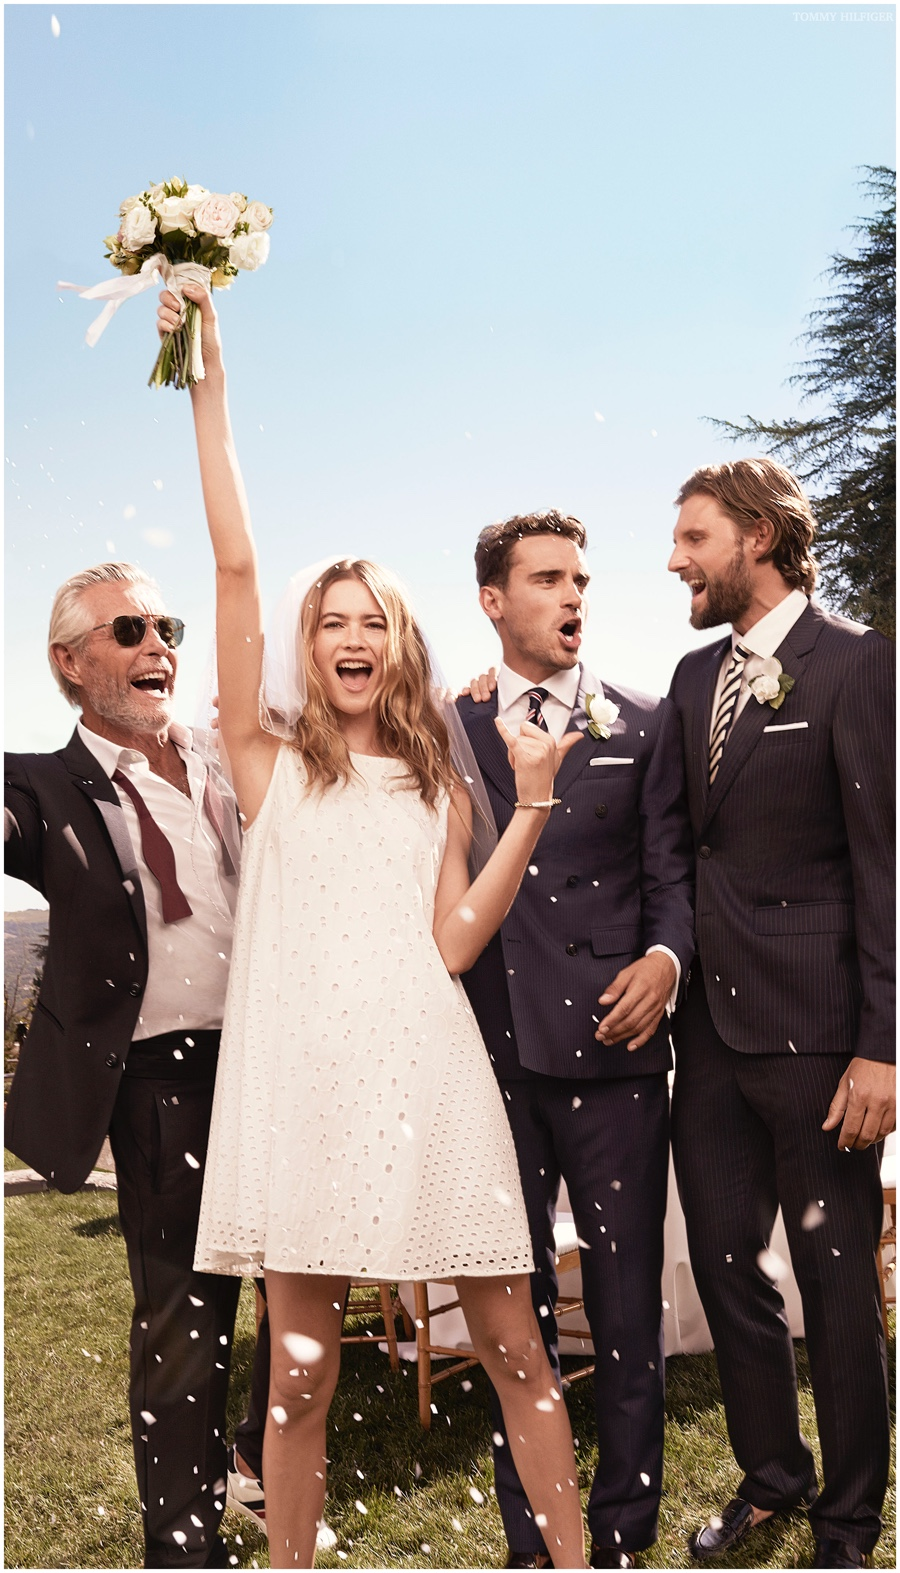 Tommy-Hilfiger-Spring-Summer-2015-Wedding-Campaign-Pictures-001